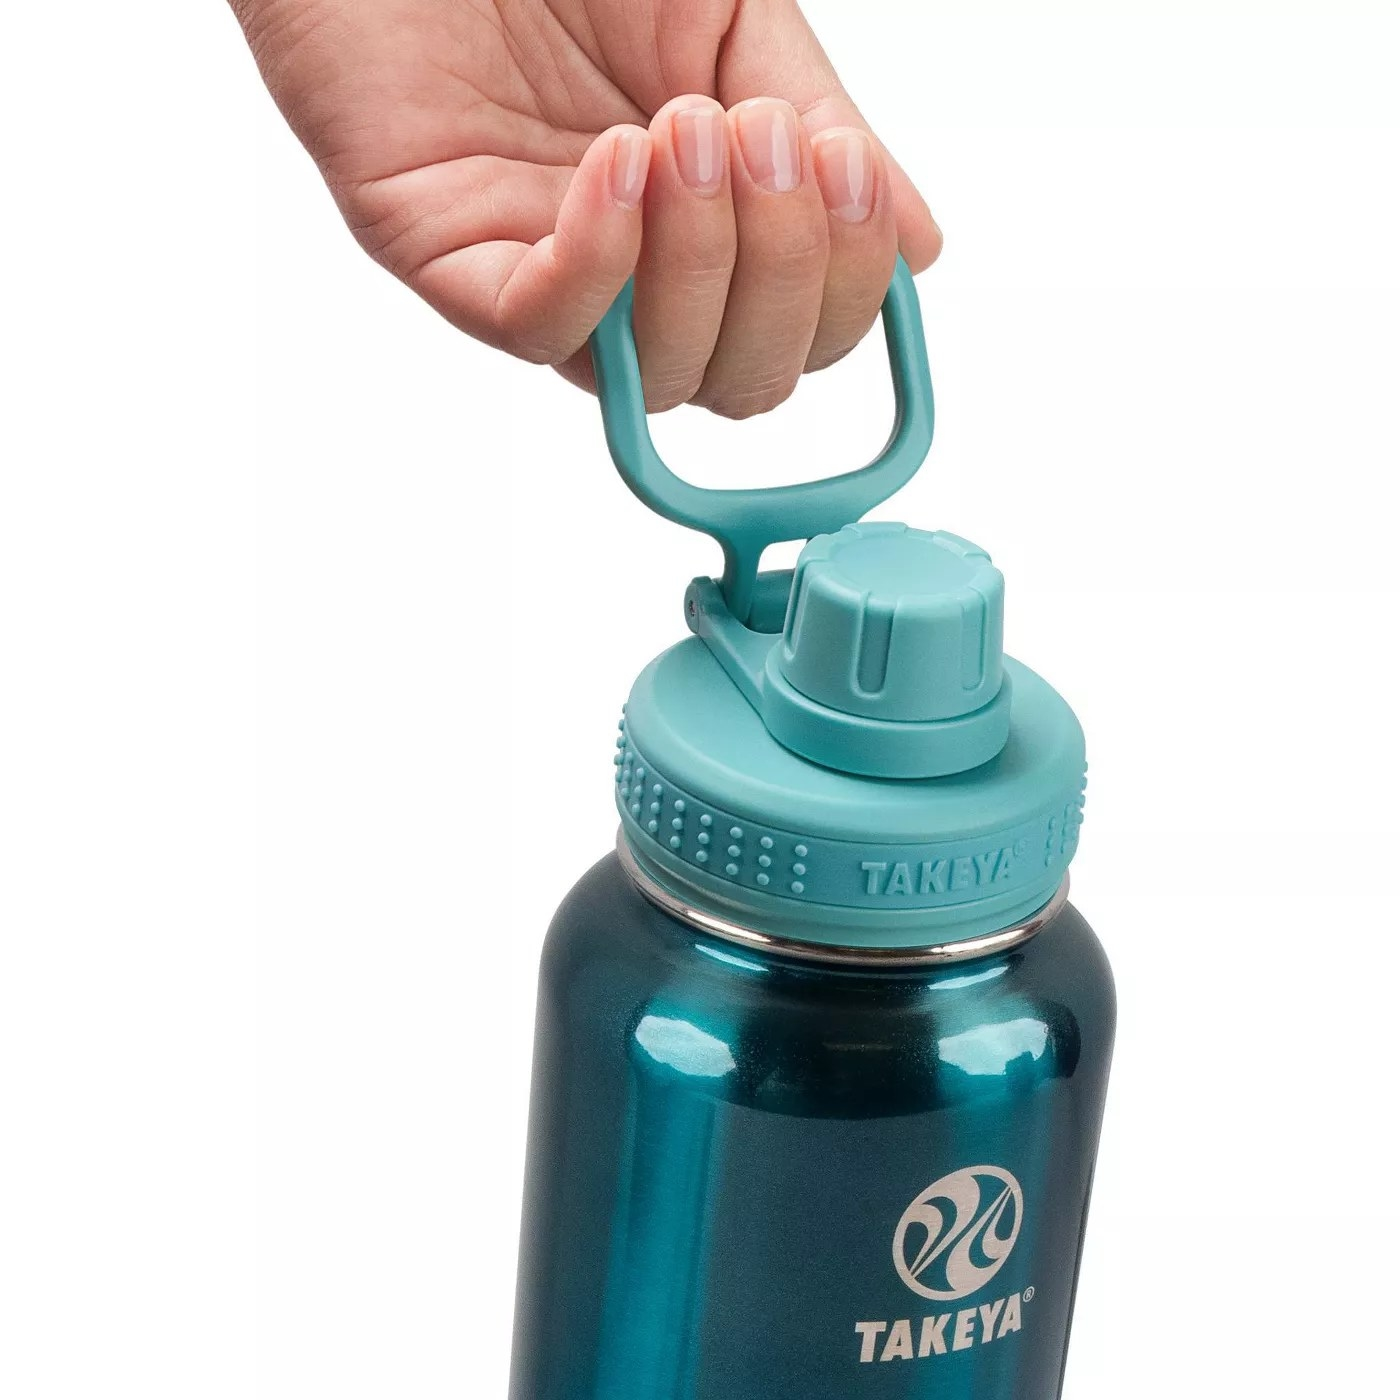 A hand holding the shiny jade water bottle by its handle